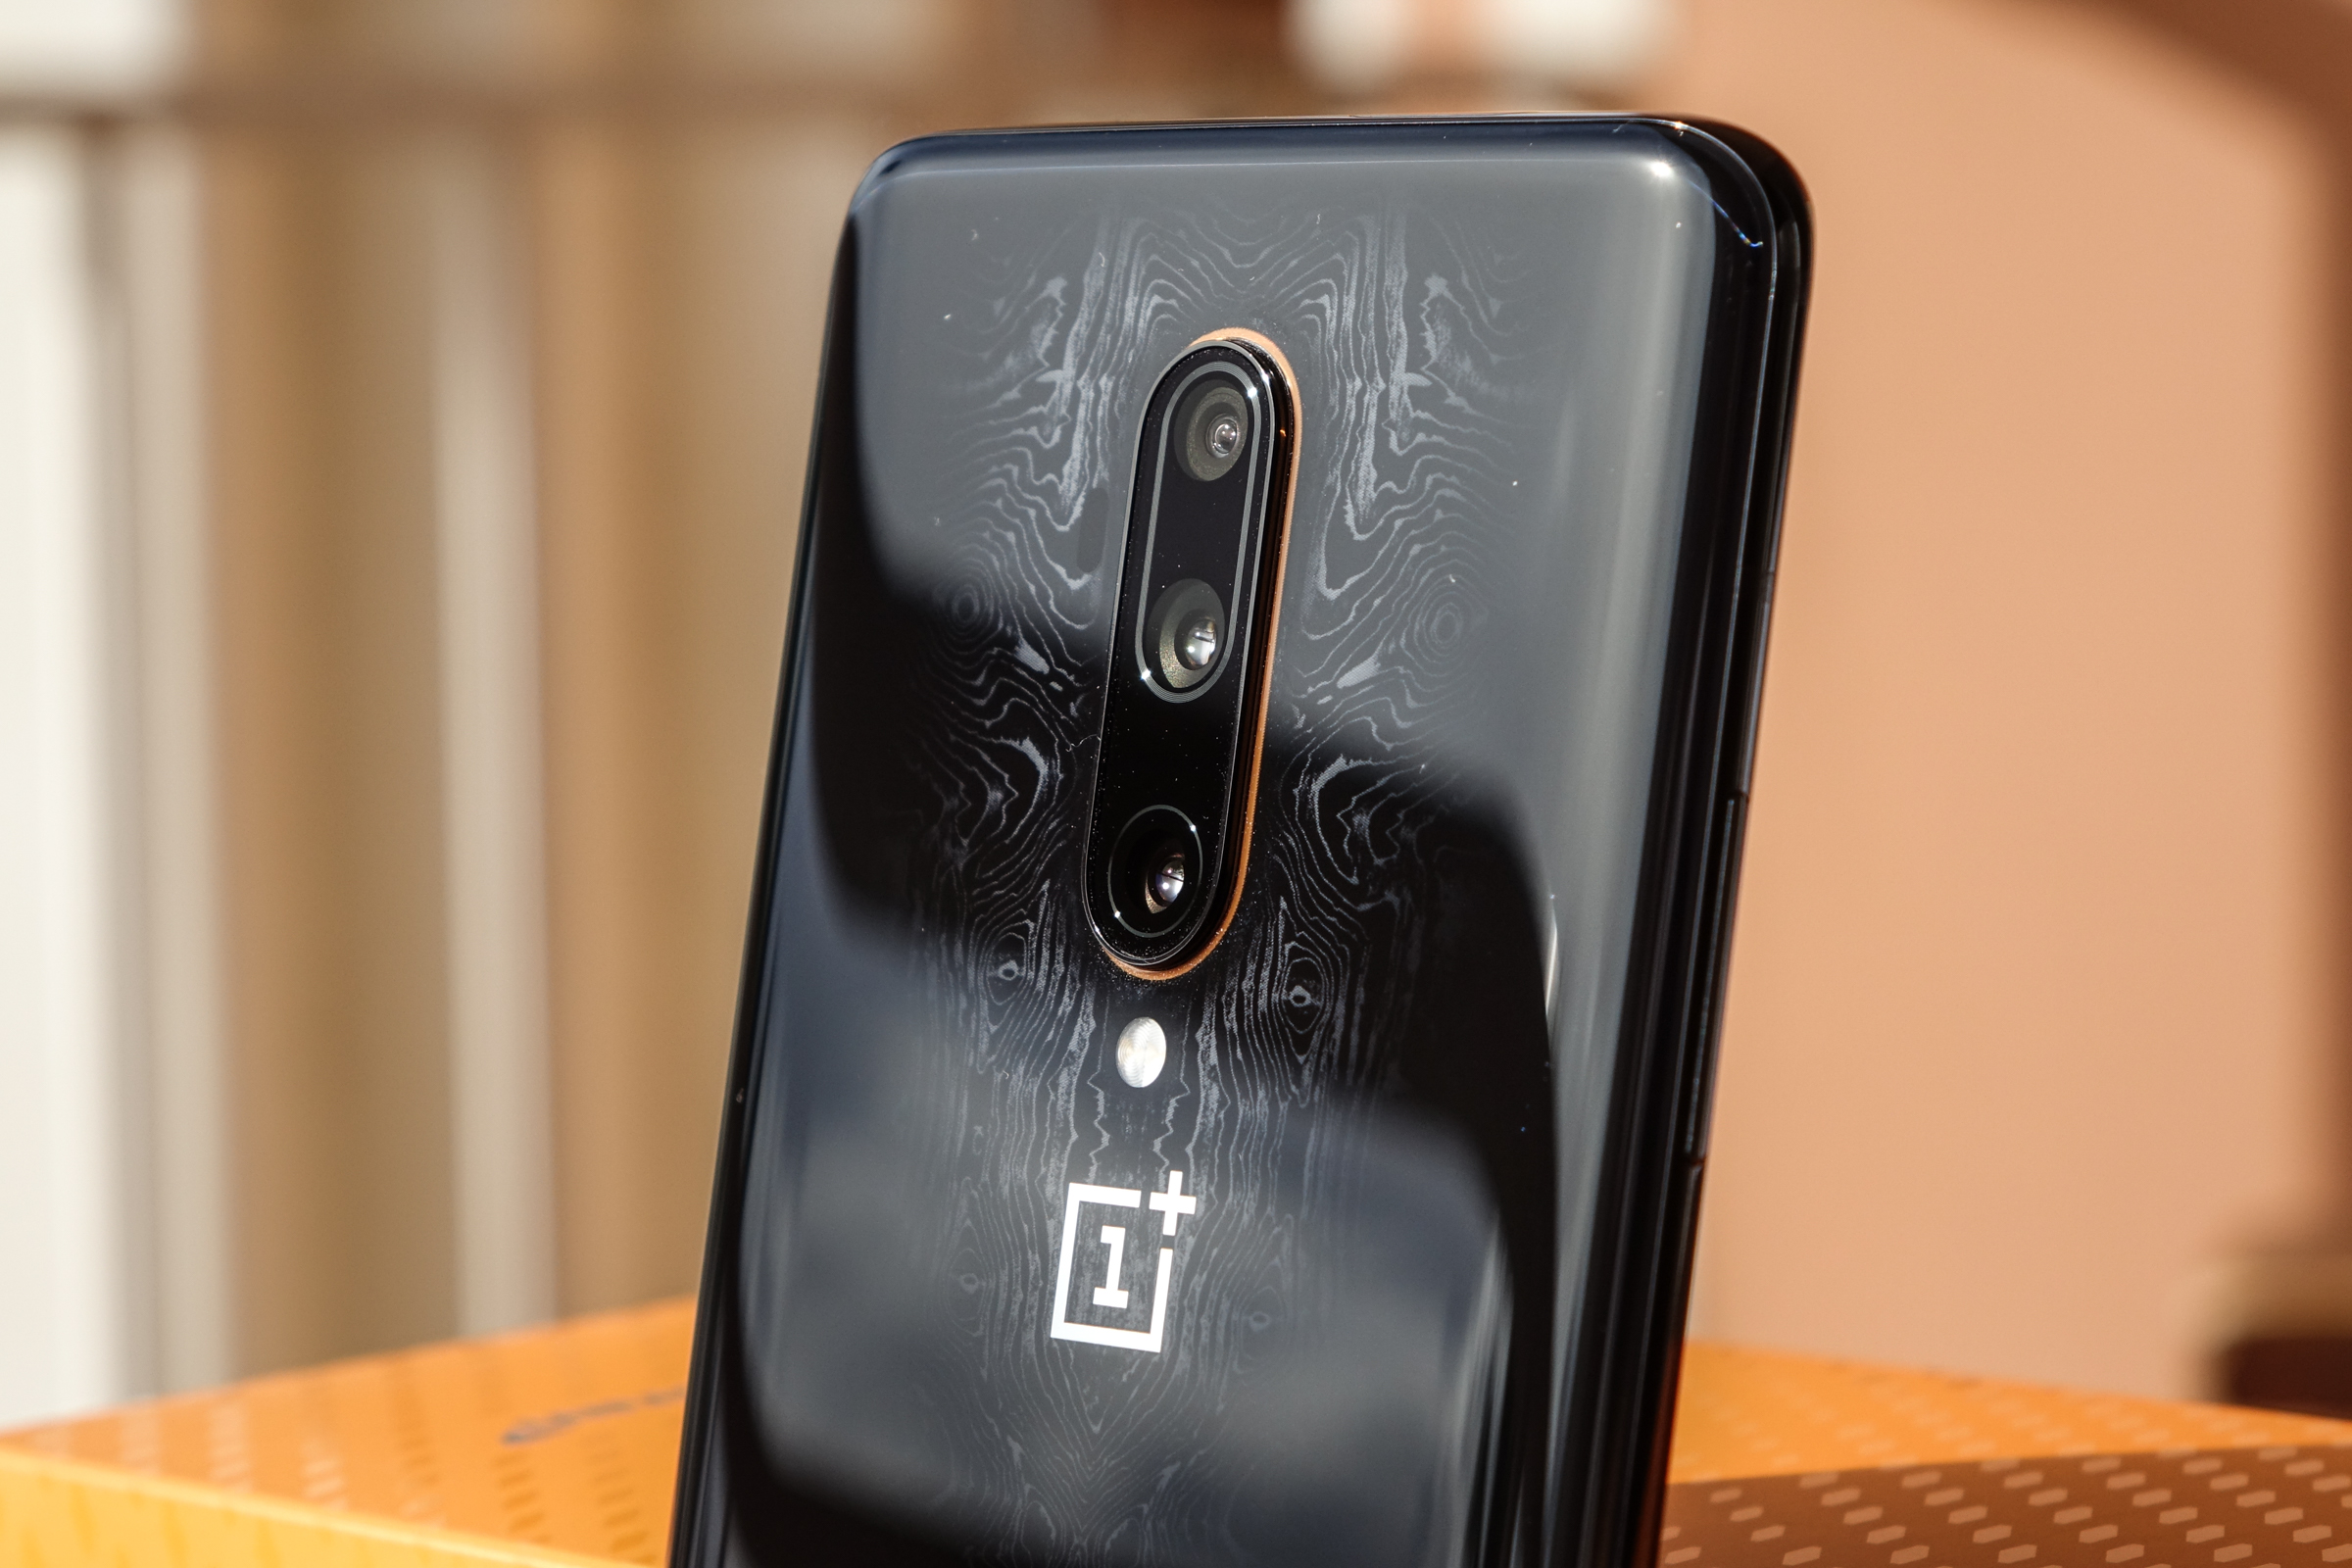 The OnePlus 7T Pro McLaren 5G is the first 5G phone I actually want to buy